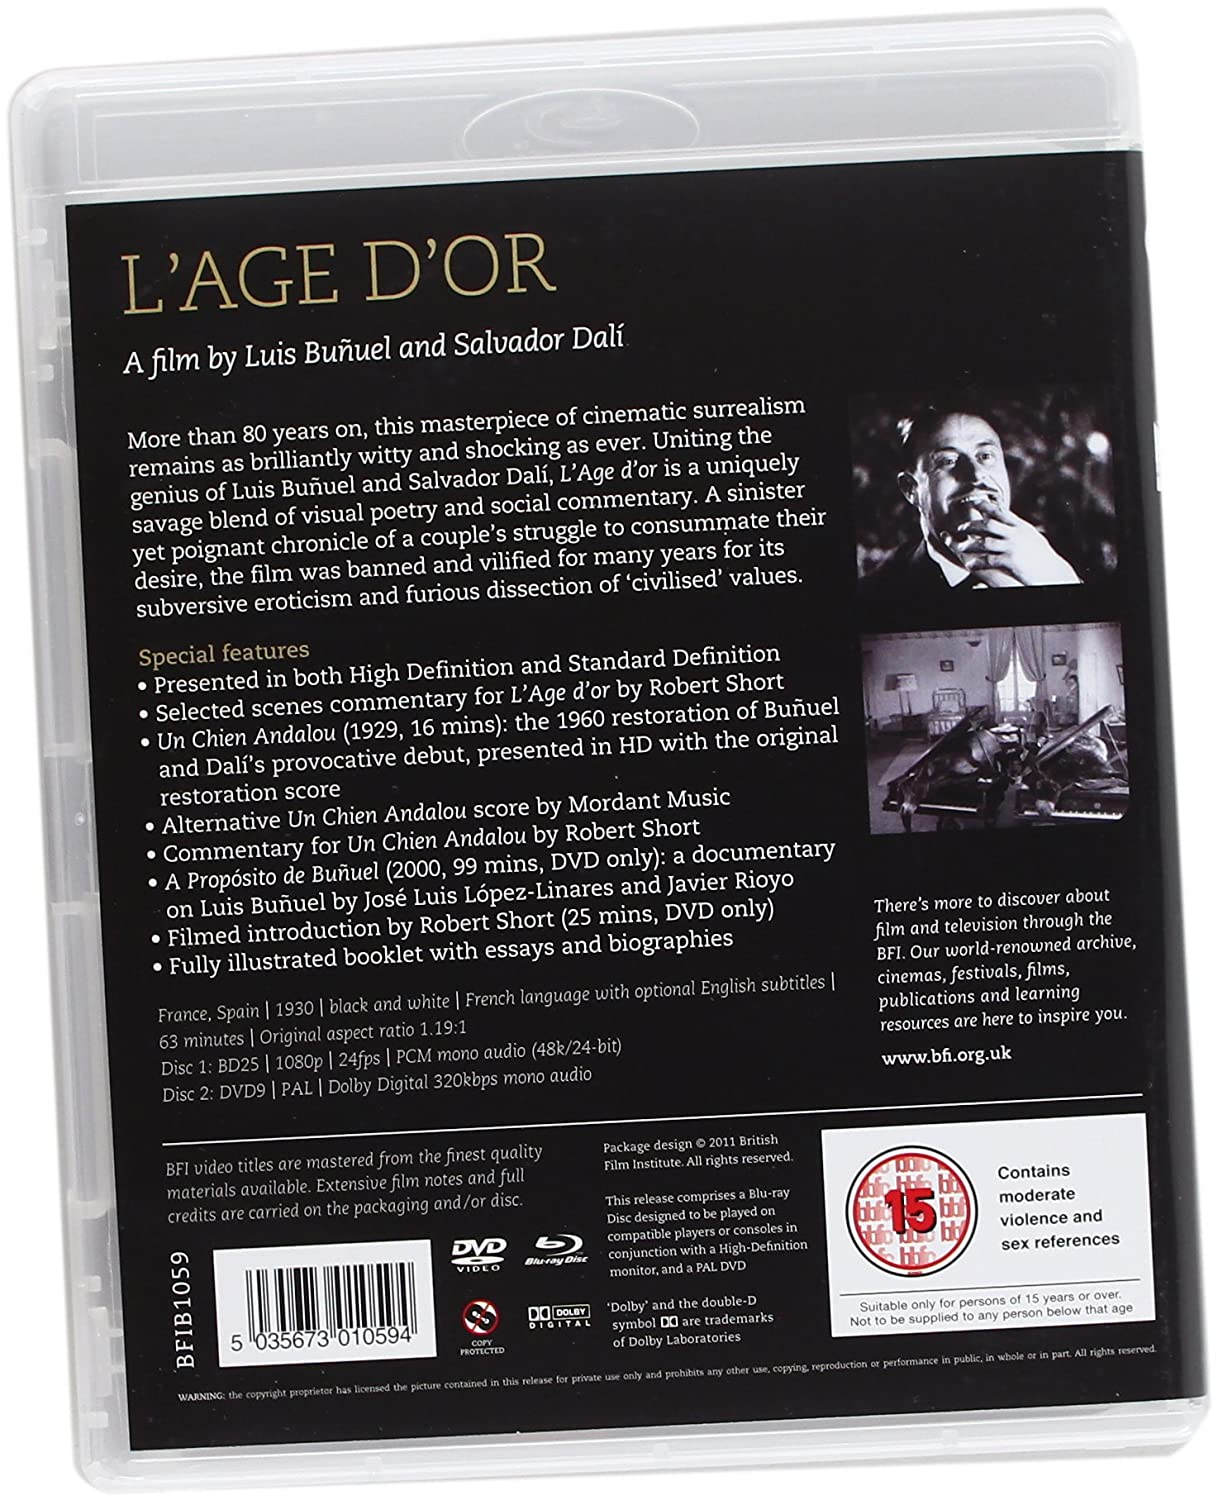 l age d or un chien andalou dvd blu ray amazon co uk l age d or un chien andalou dvd blu ray 1930 amazon co uk luis buatildeplusmnu dalatildeshy dvd blu ray